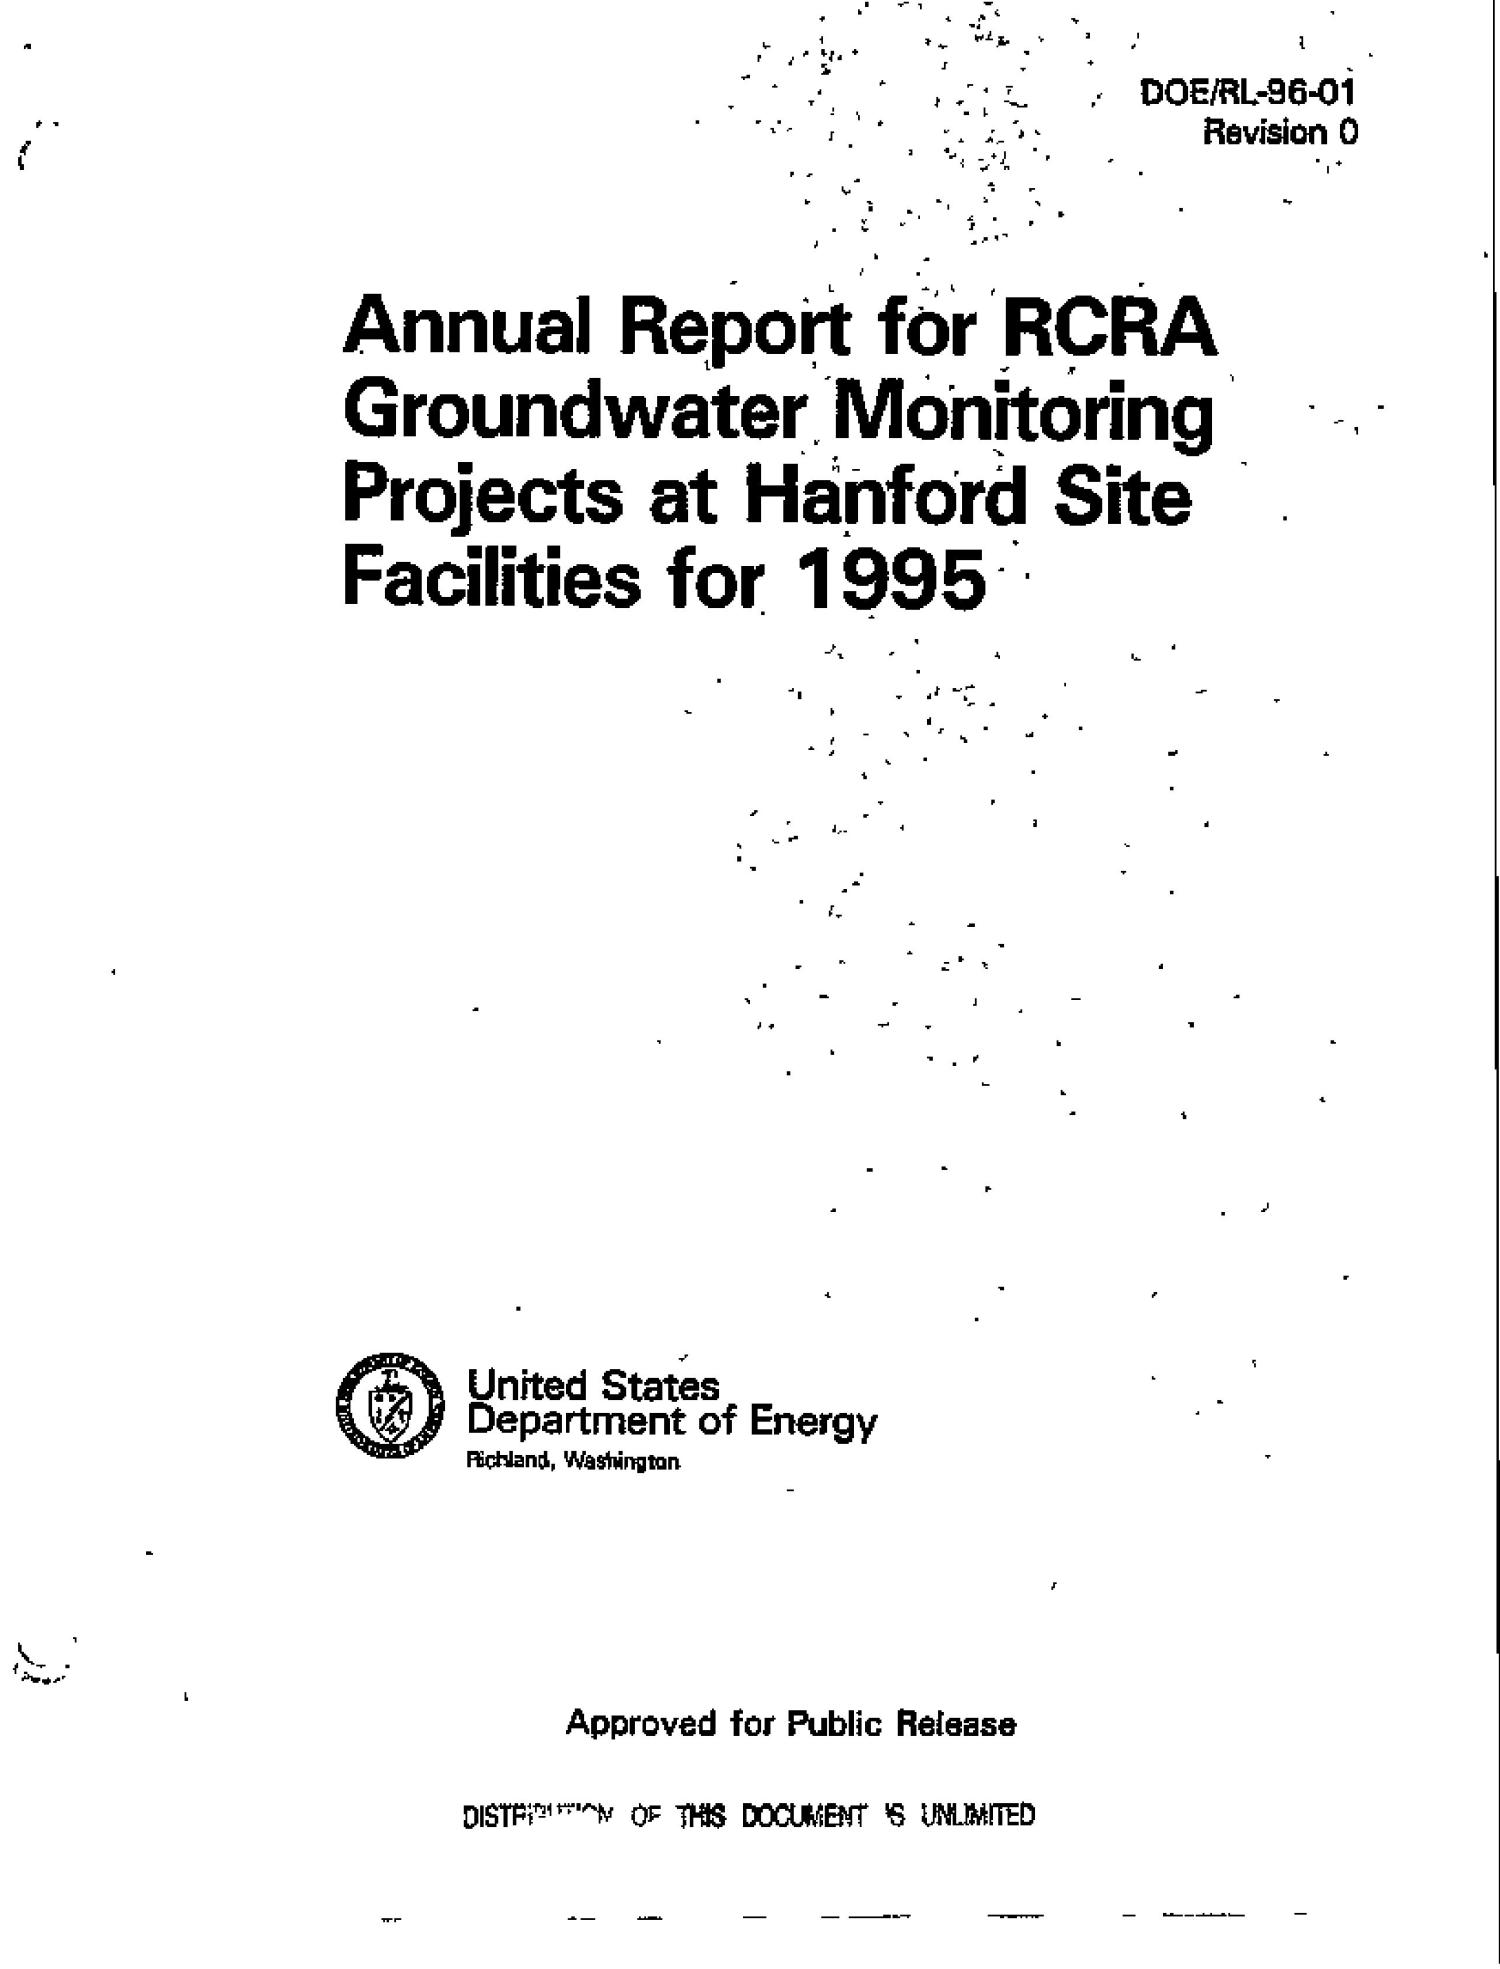 Annual report for RCRA groundwater monitoring projects at